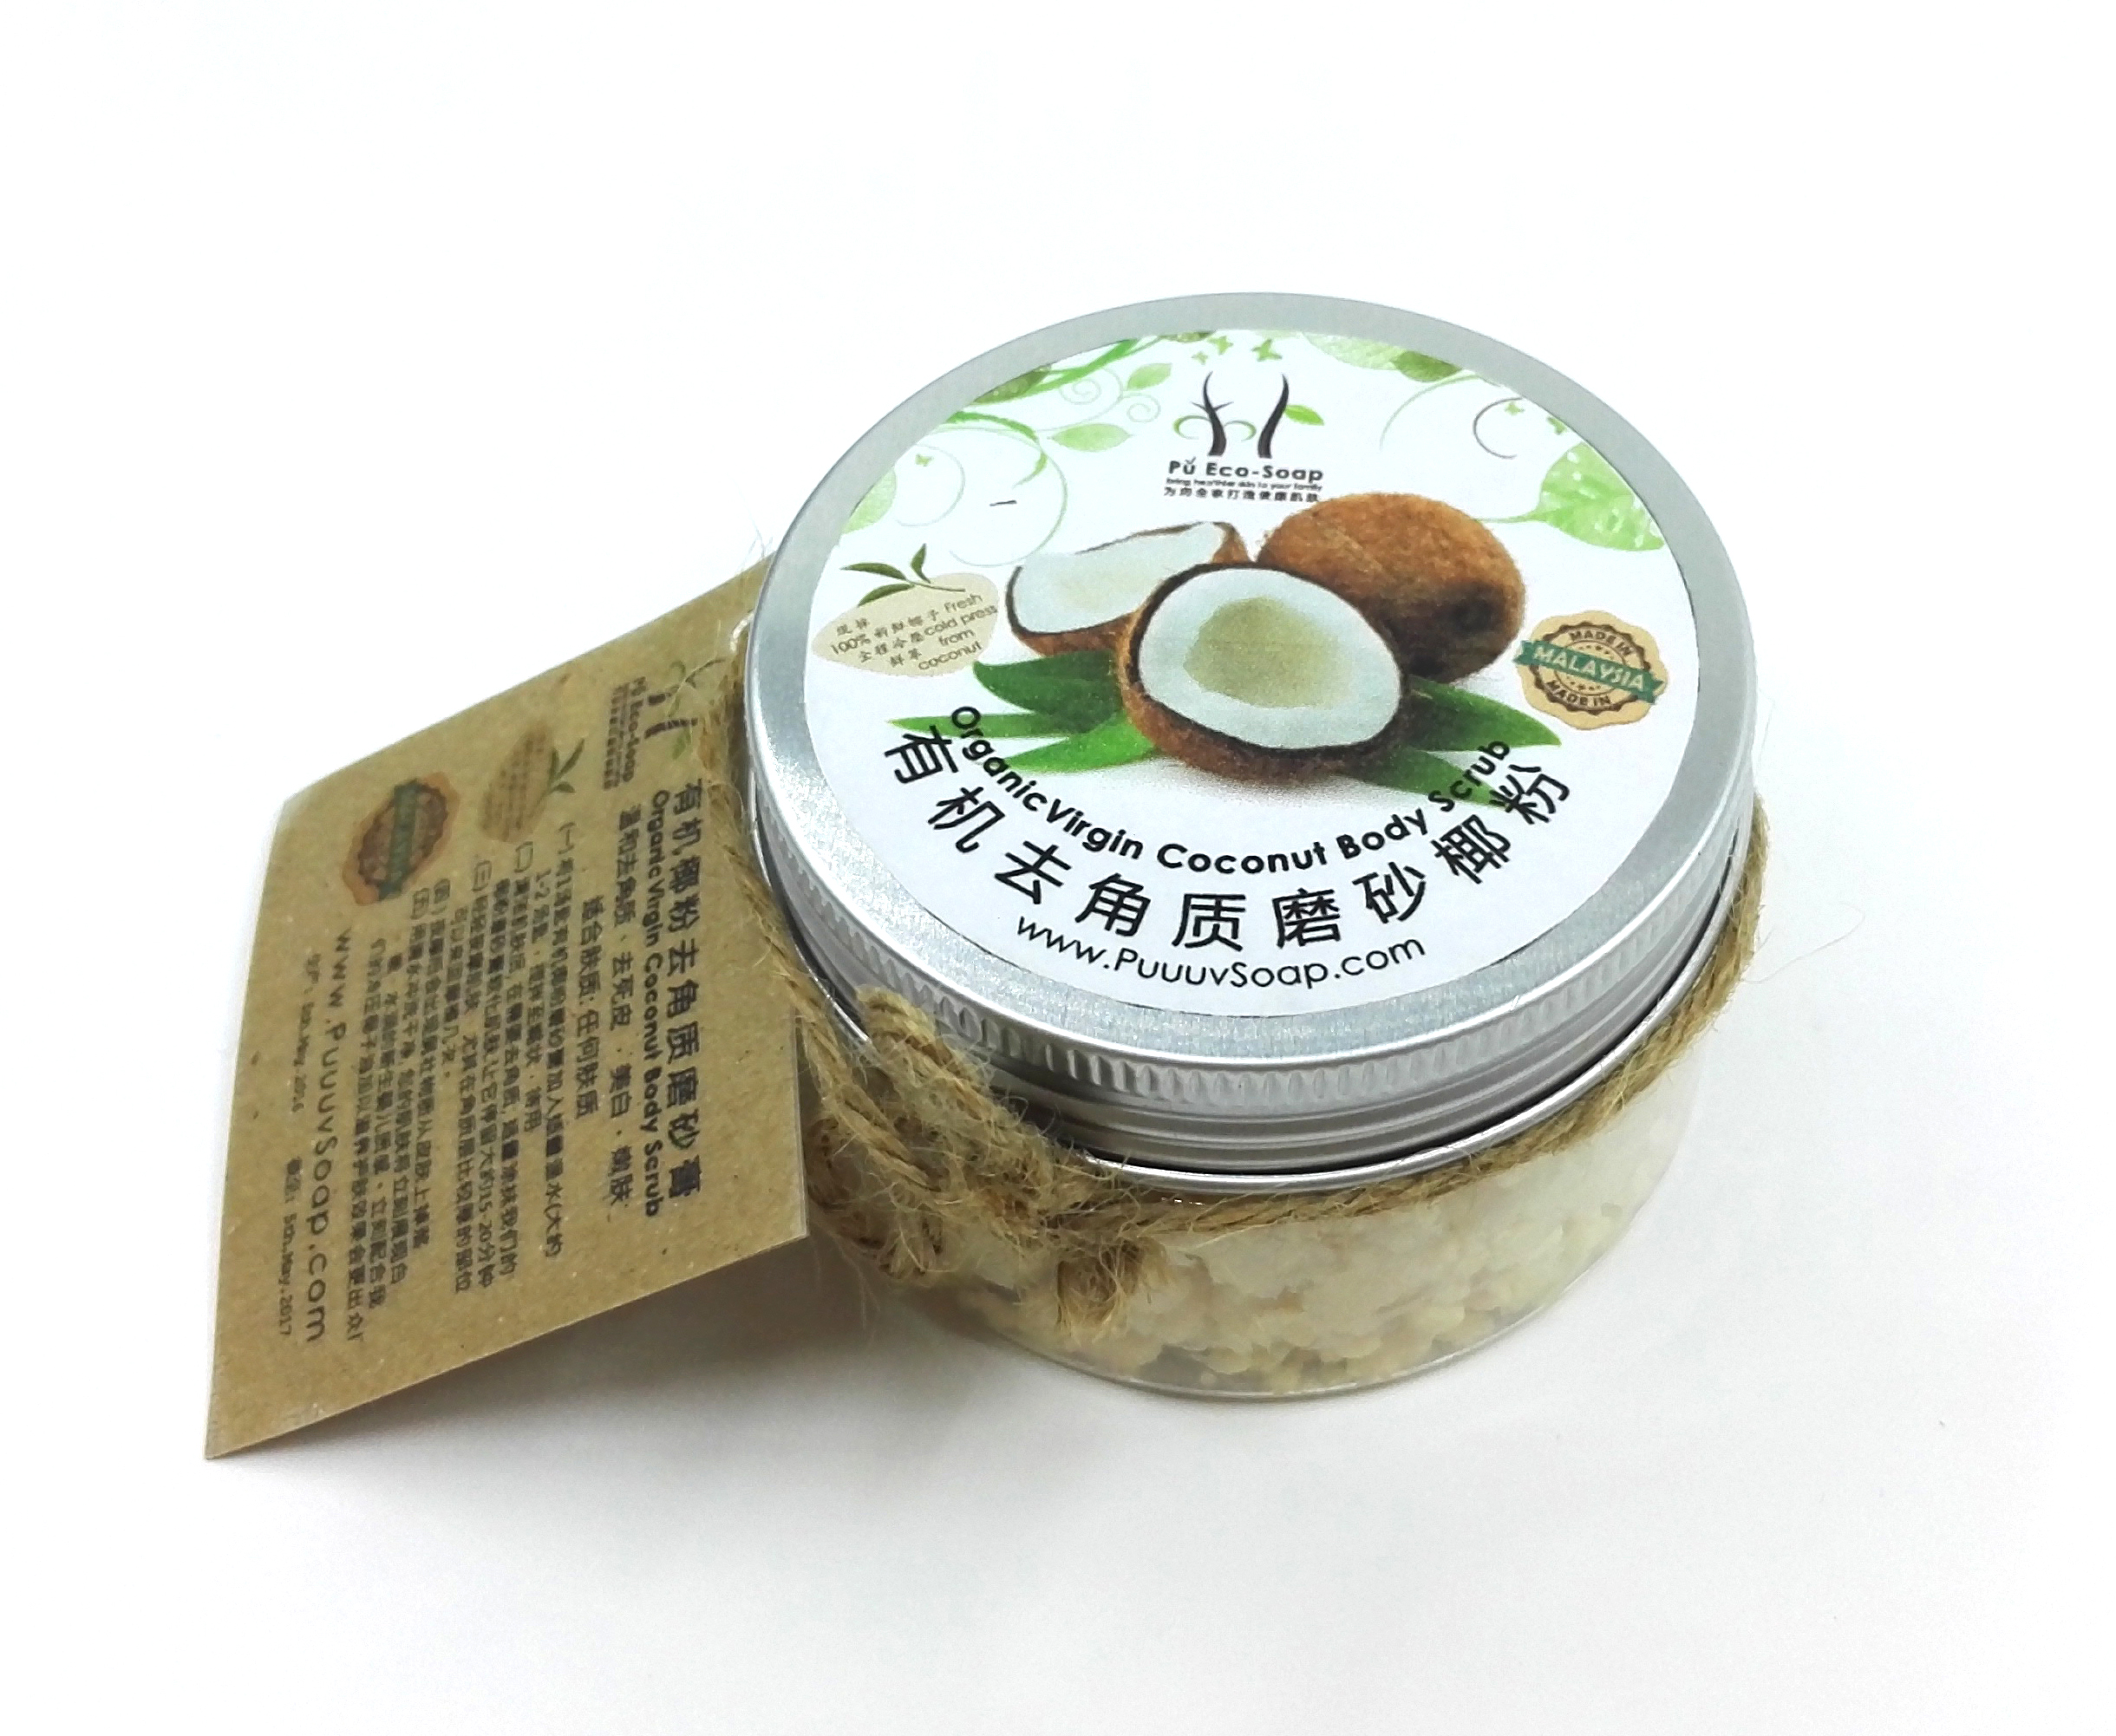 NLO-002 - Handmade Organic Coconut Body Scrub Powder 120g